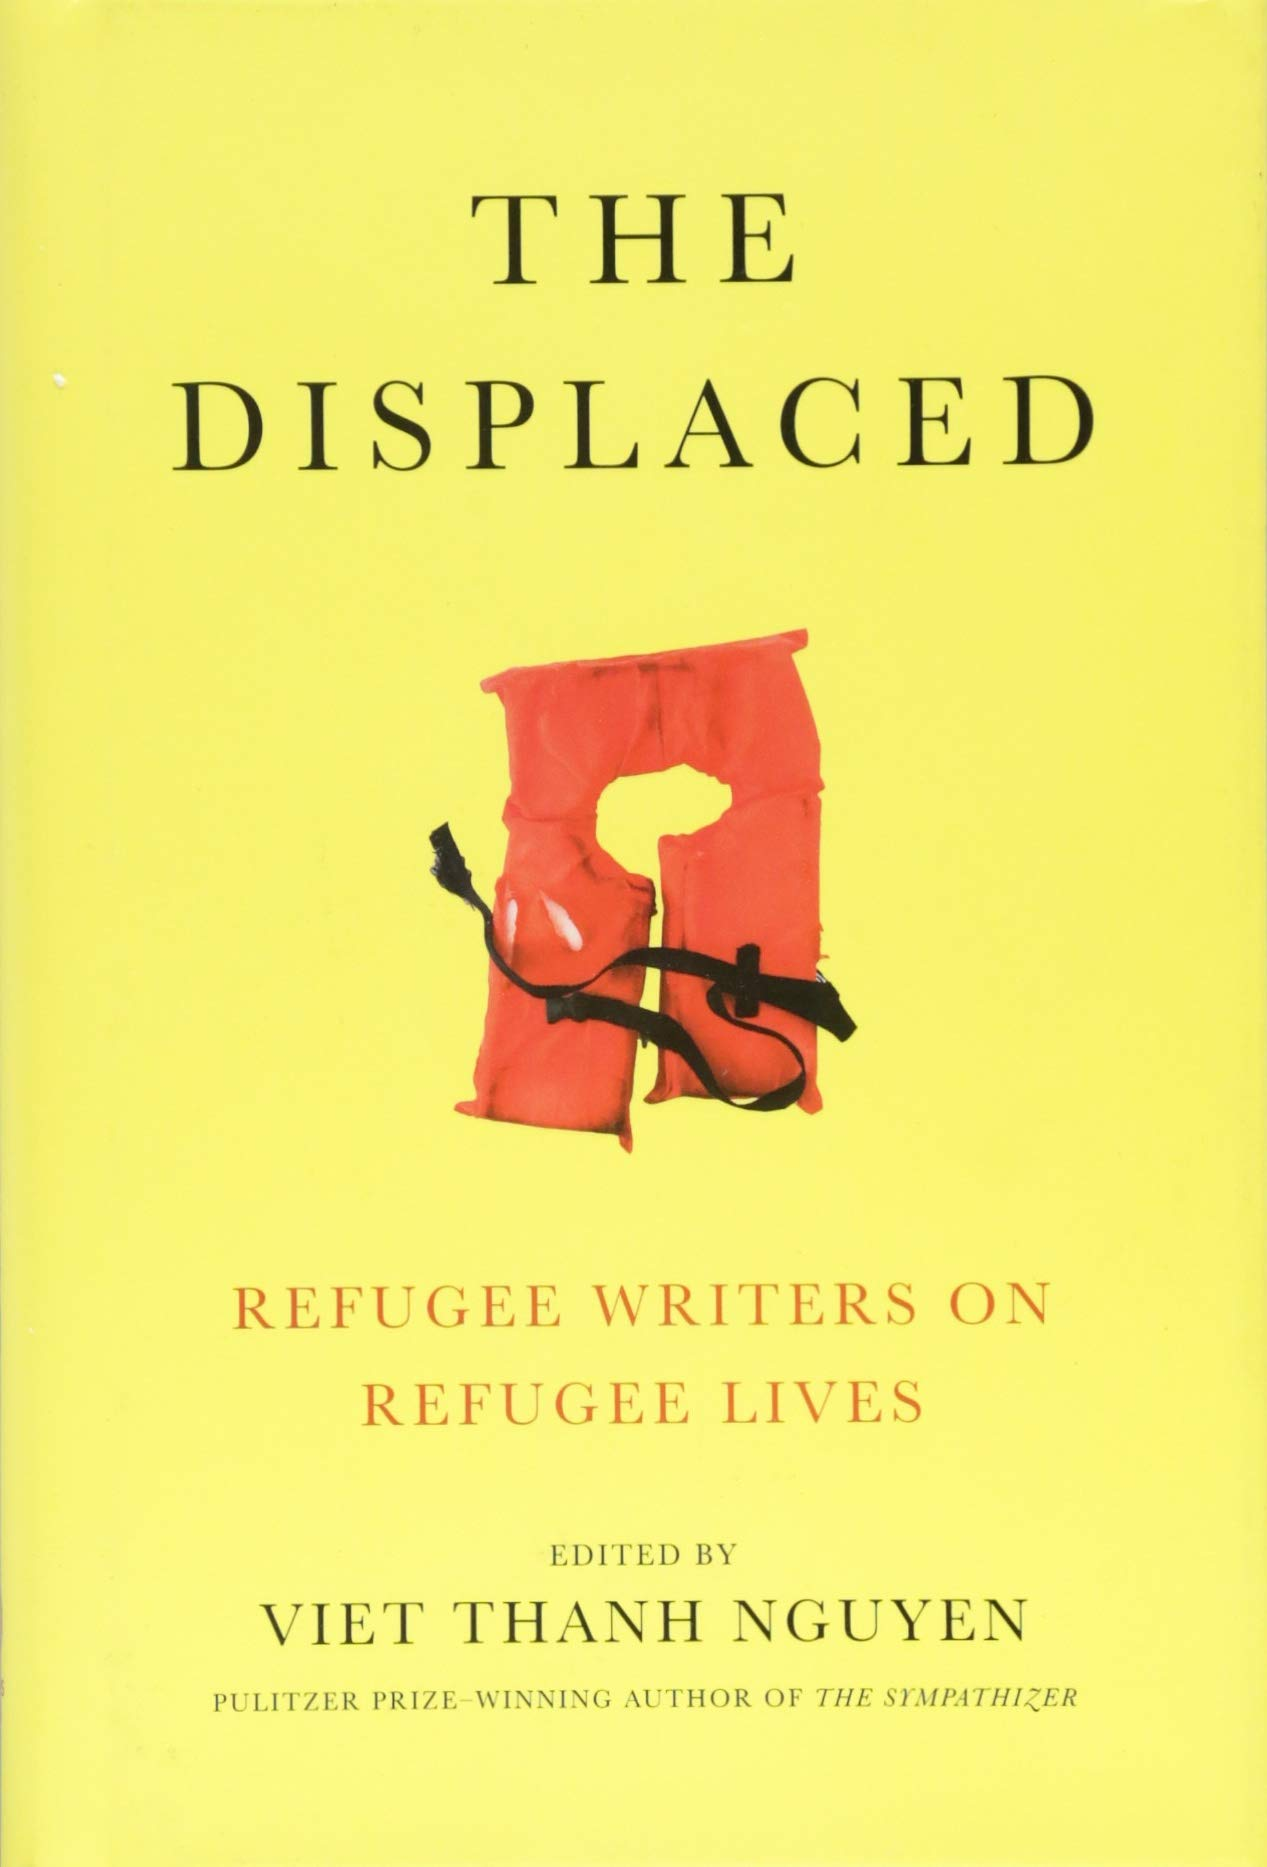 The cover of the book The Displaced